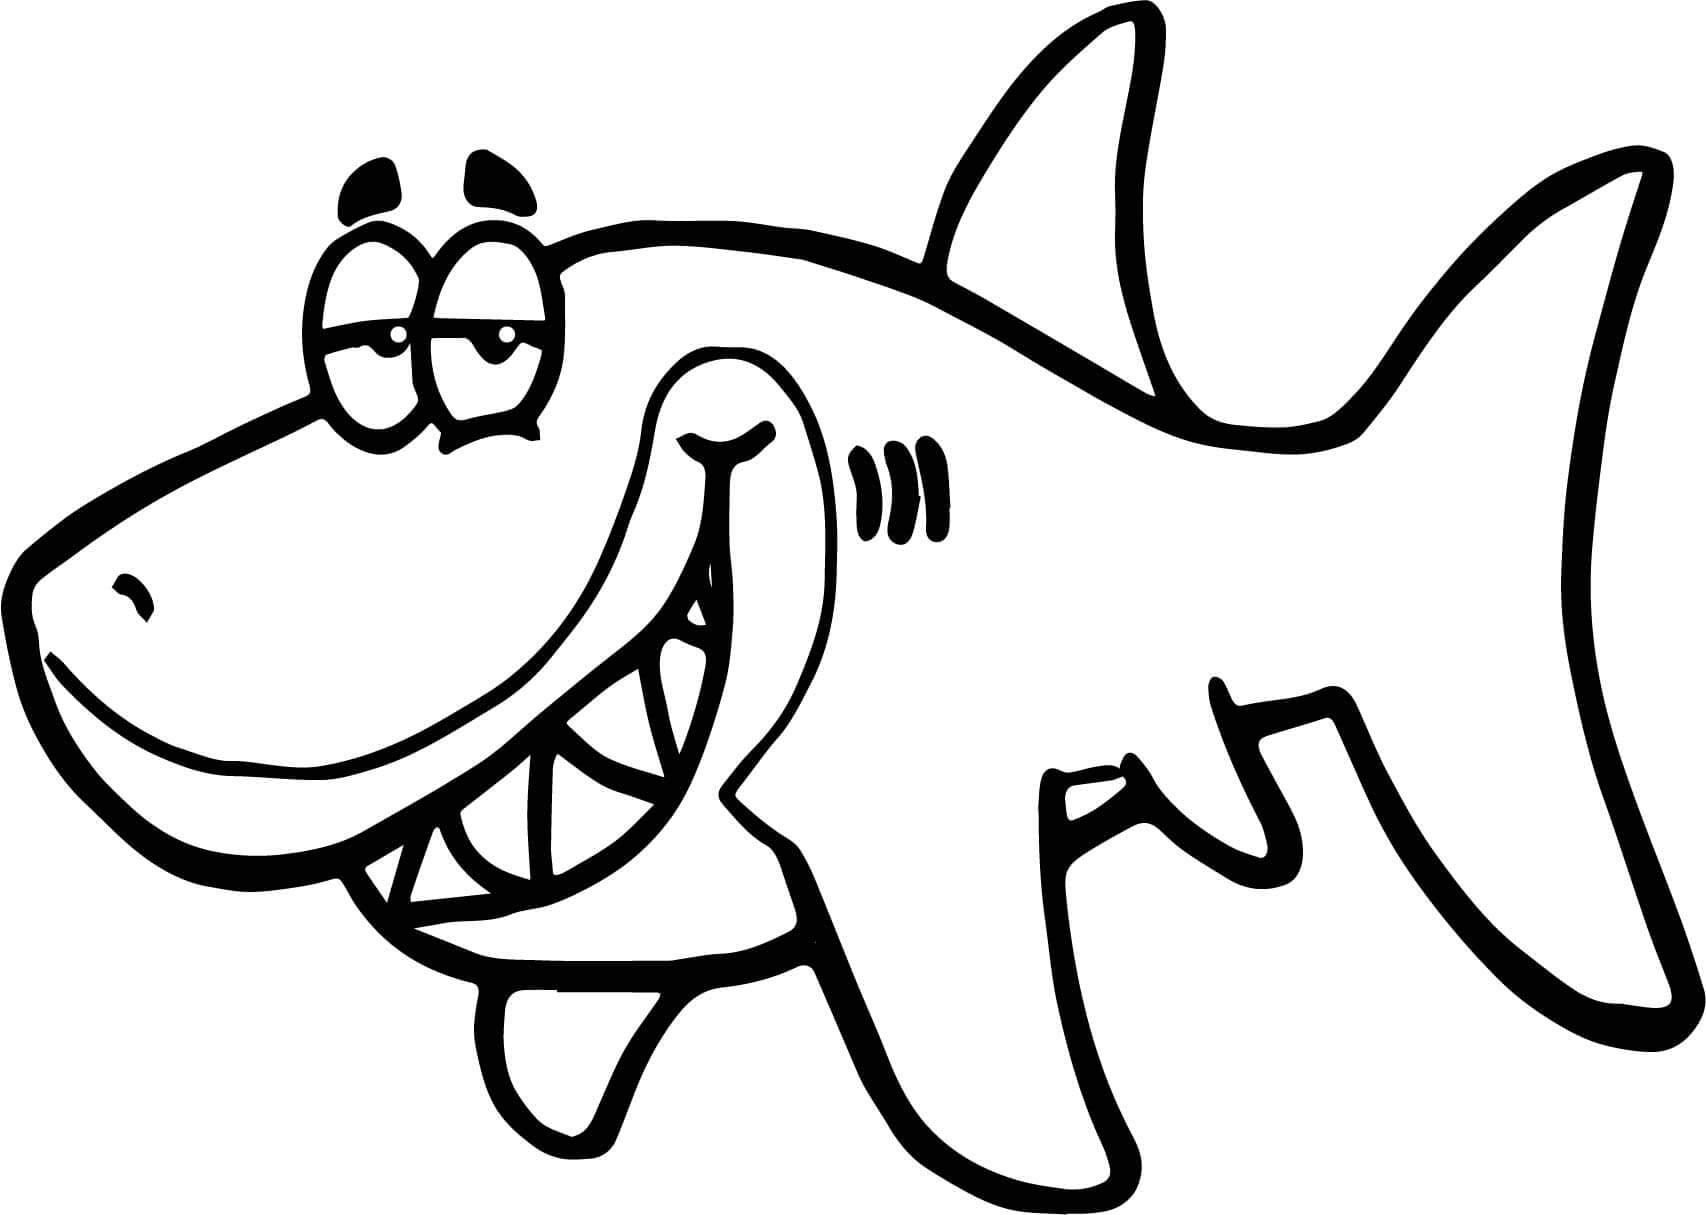 sharks pictures to color sharks to color for children sharks kids coloring pages to pictures color sharks